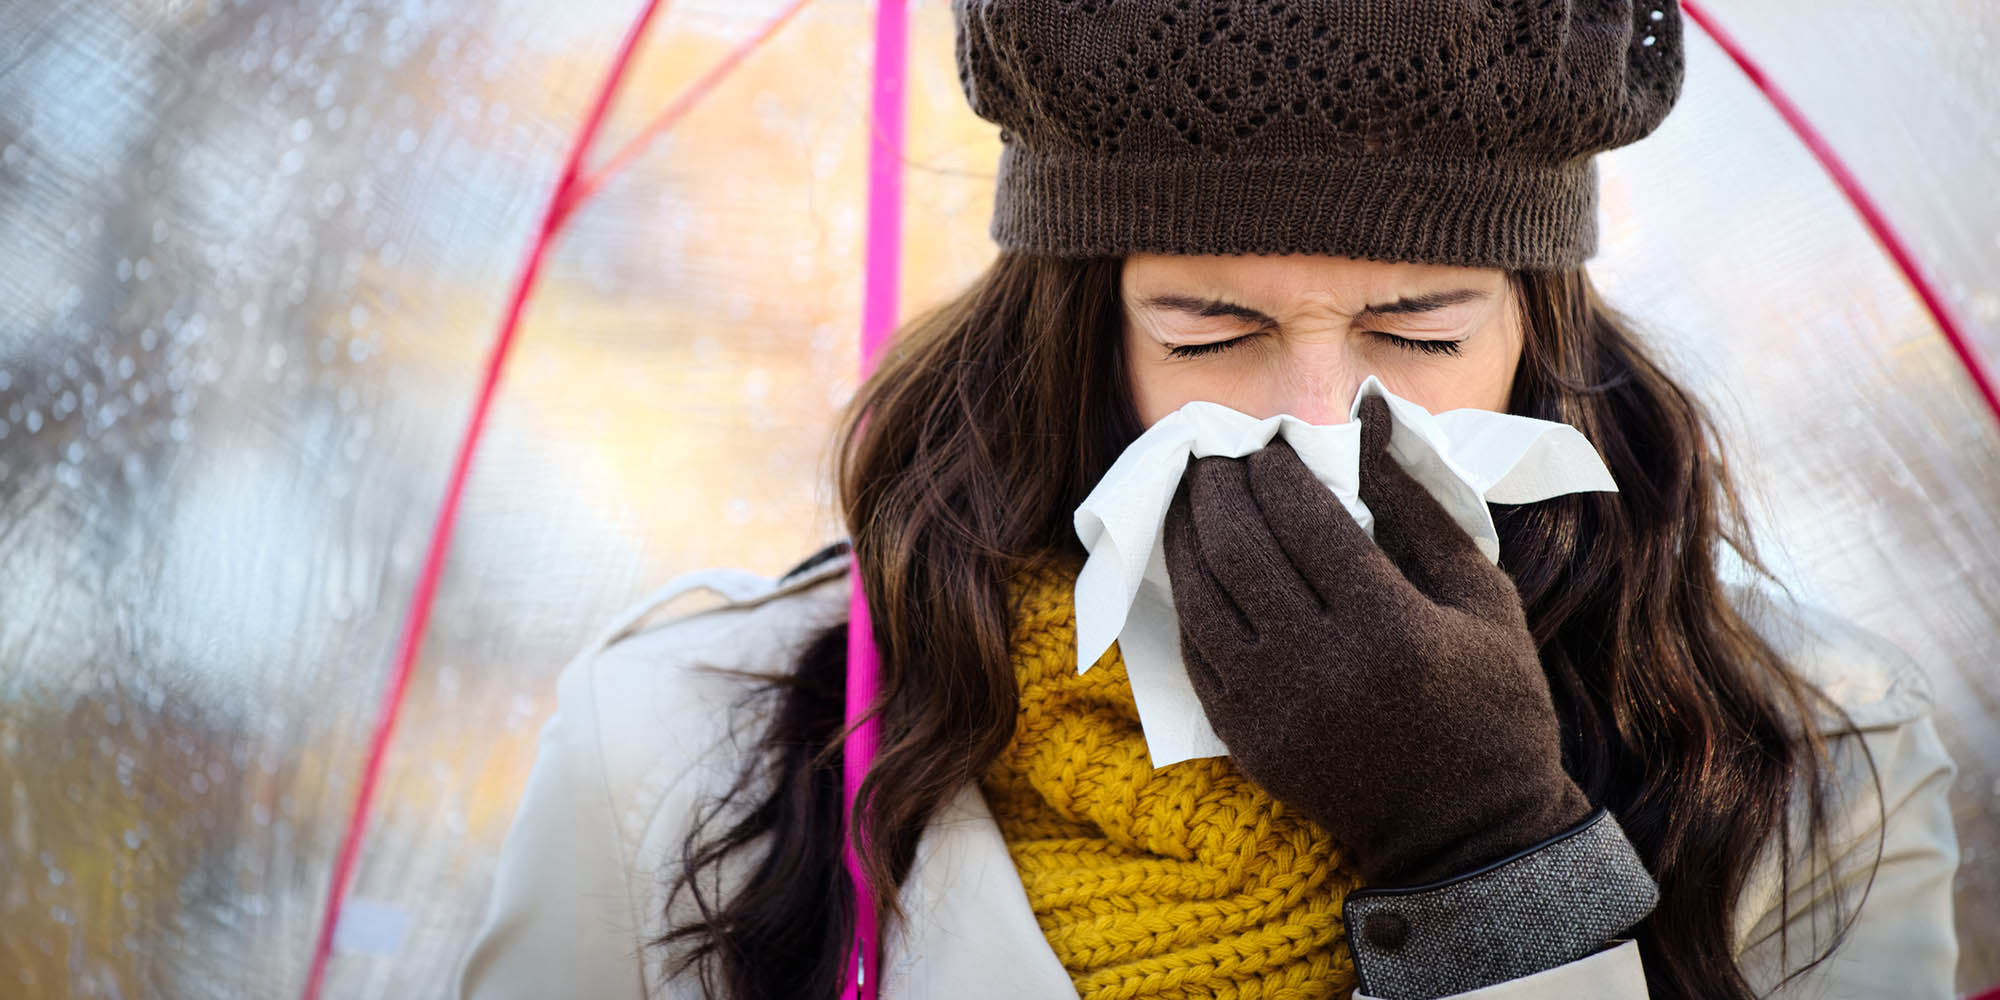 Are You Sure That's a Cold? A Guide to Winter Allergies